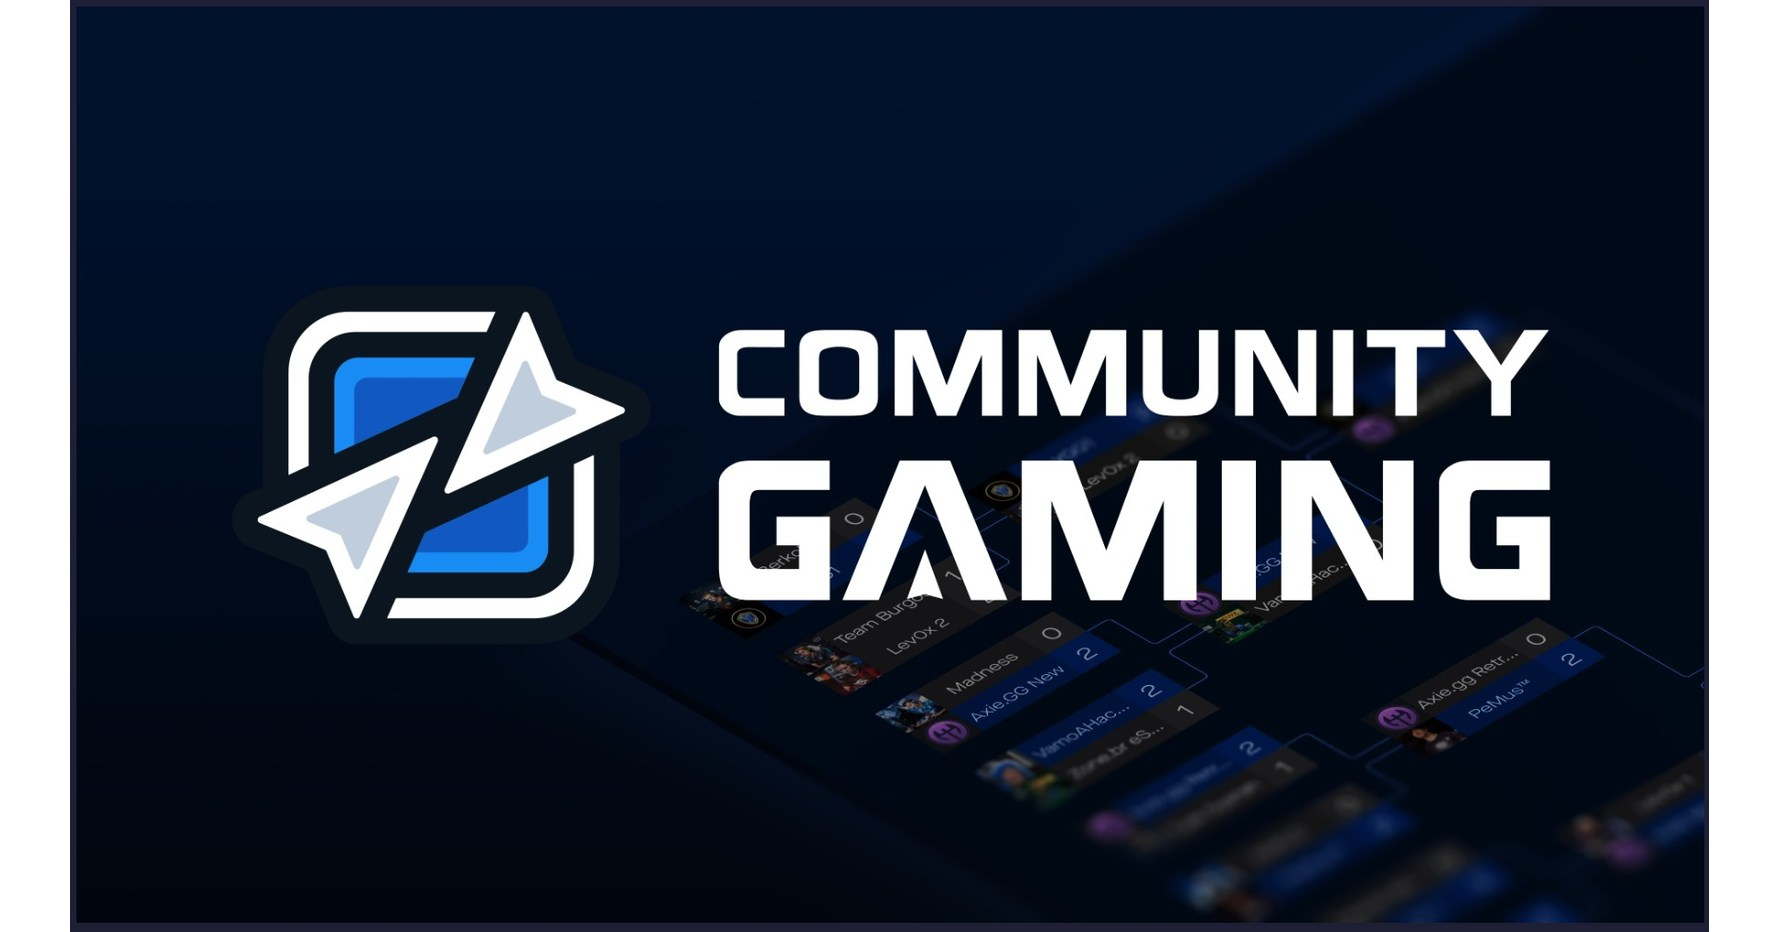 Community Gaming Partners with the Maker Foundation and Theta.tv to Host Three Crypto-powered Esports Tournaments